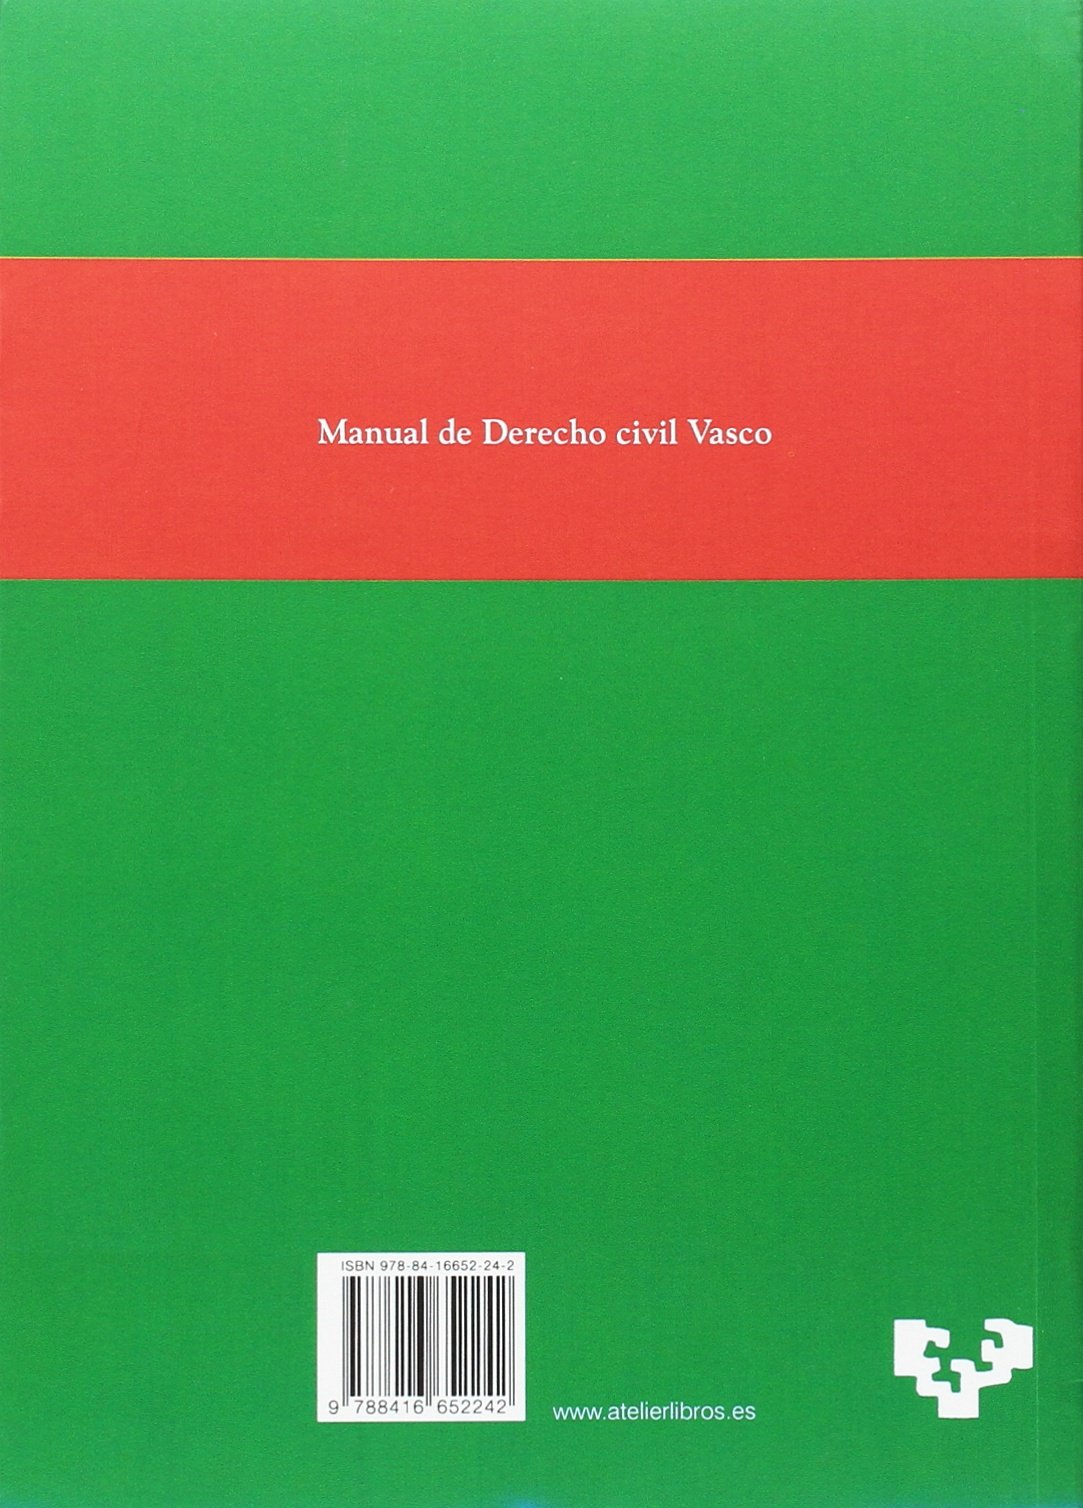 Manual De Derecho Civil Vasco Amazon Es Gil Rodriguez Jacinto Libros